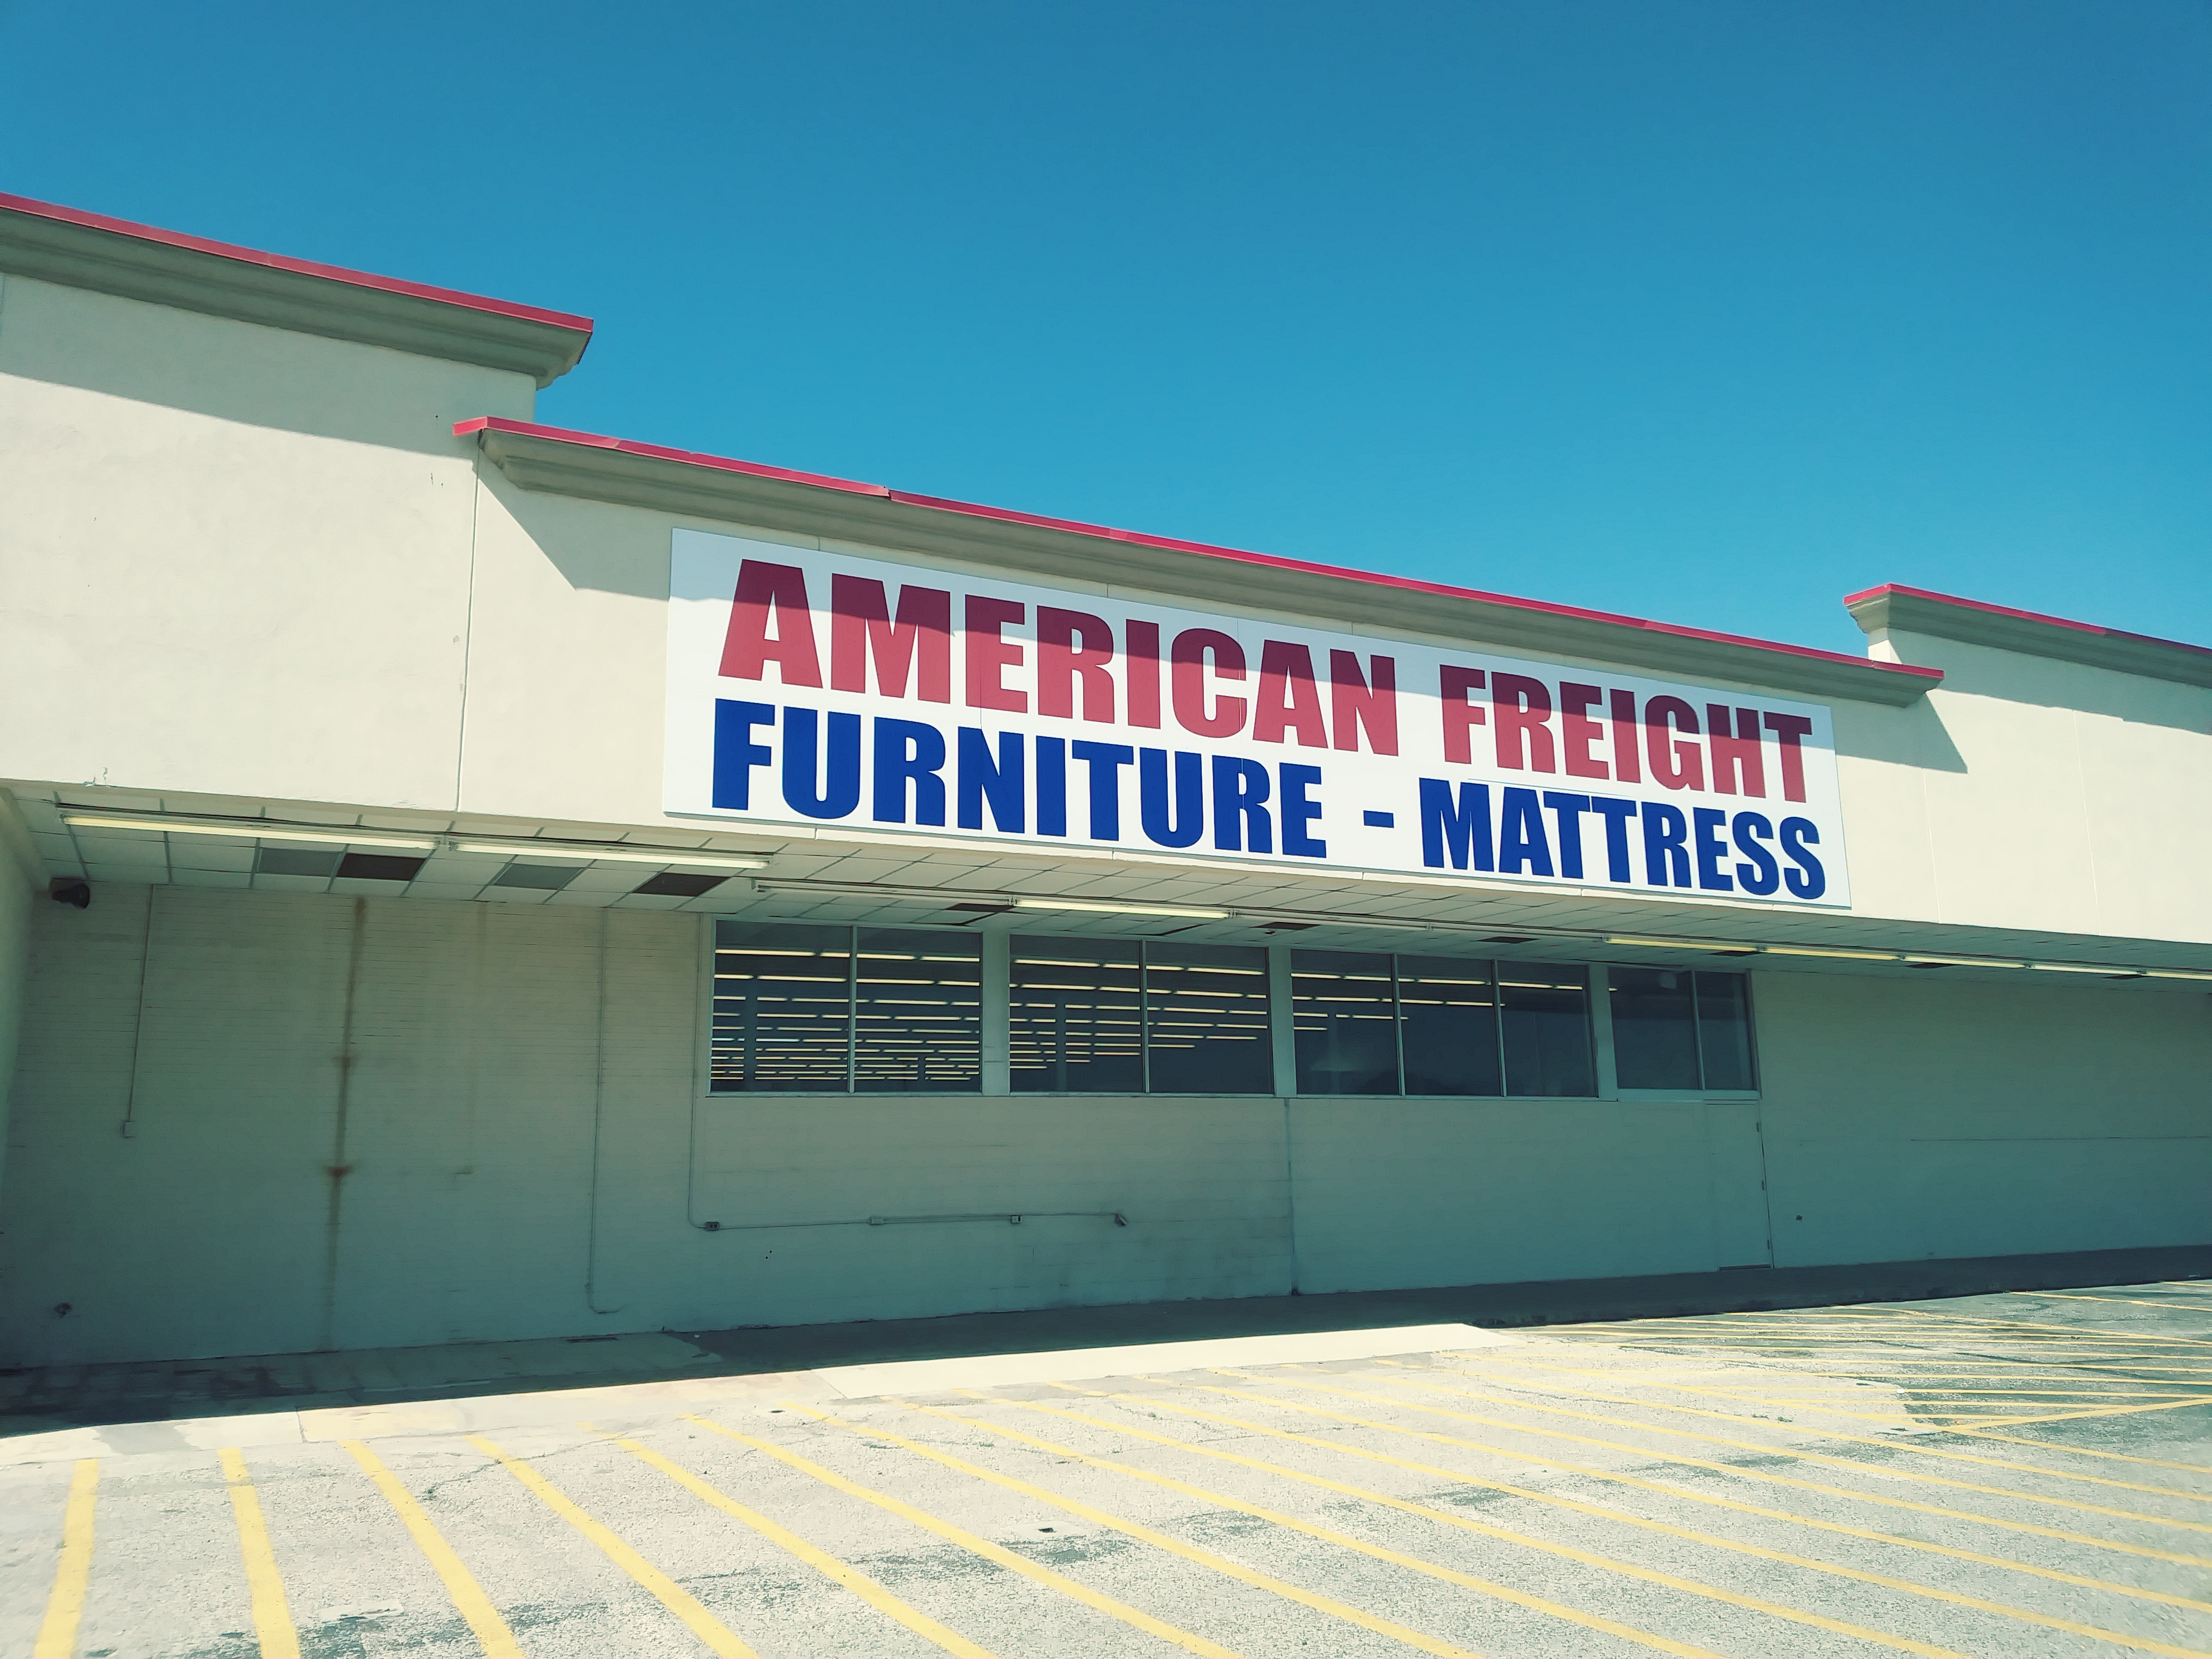 American Freight Furniture And Mattress, Lubbock Texas (TX)